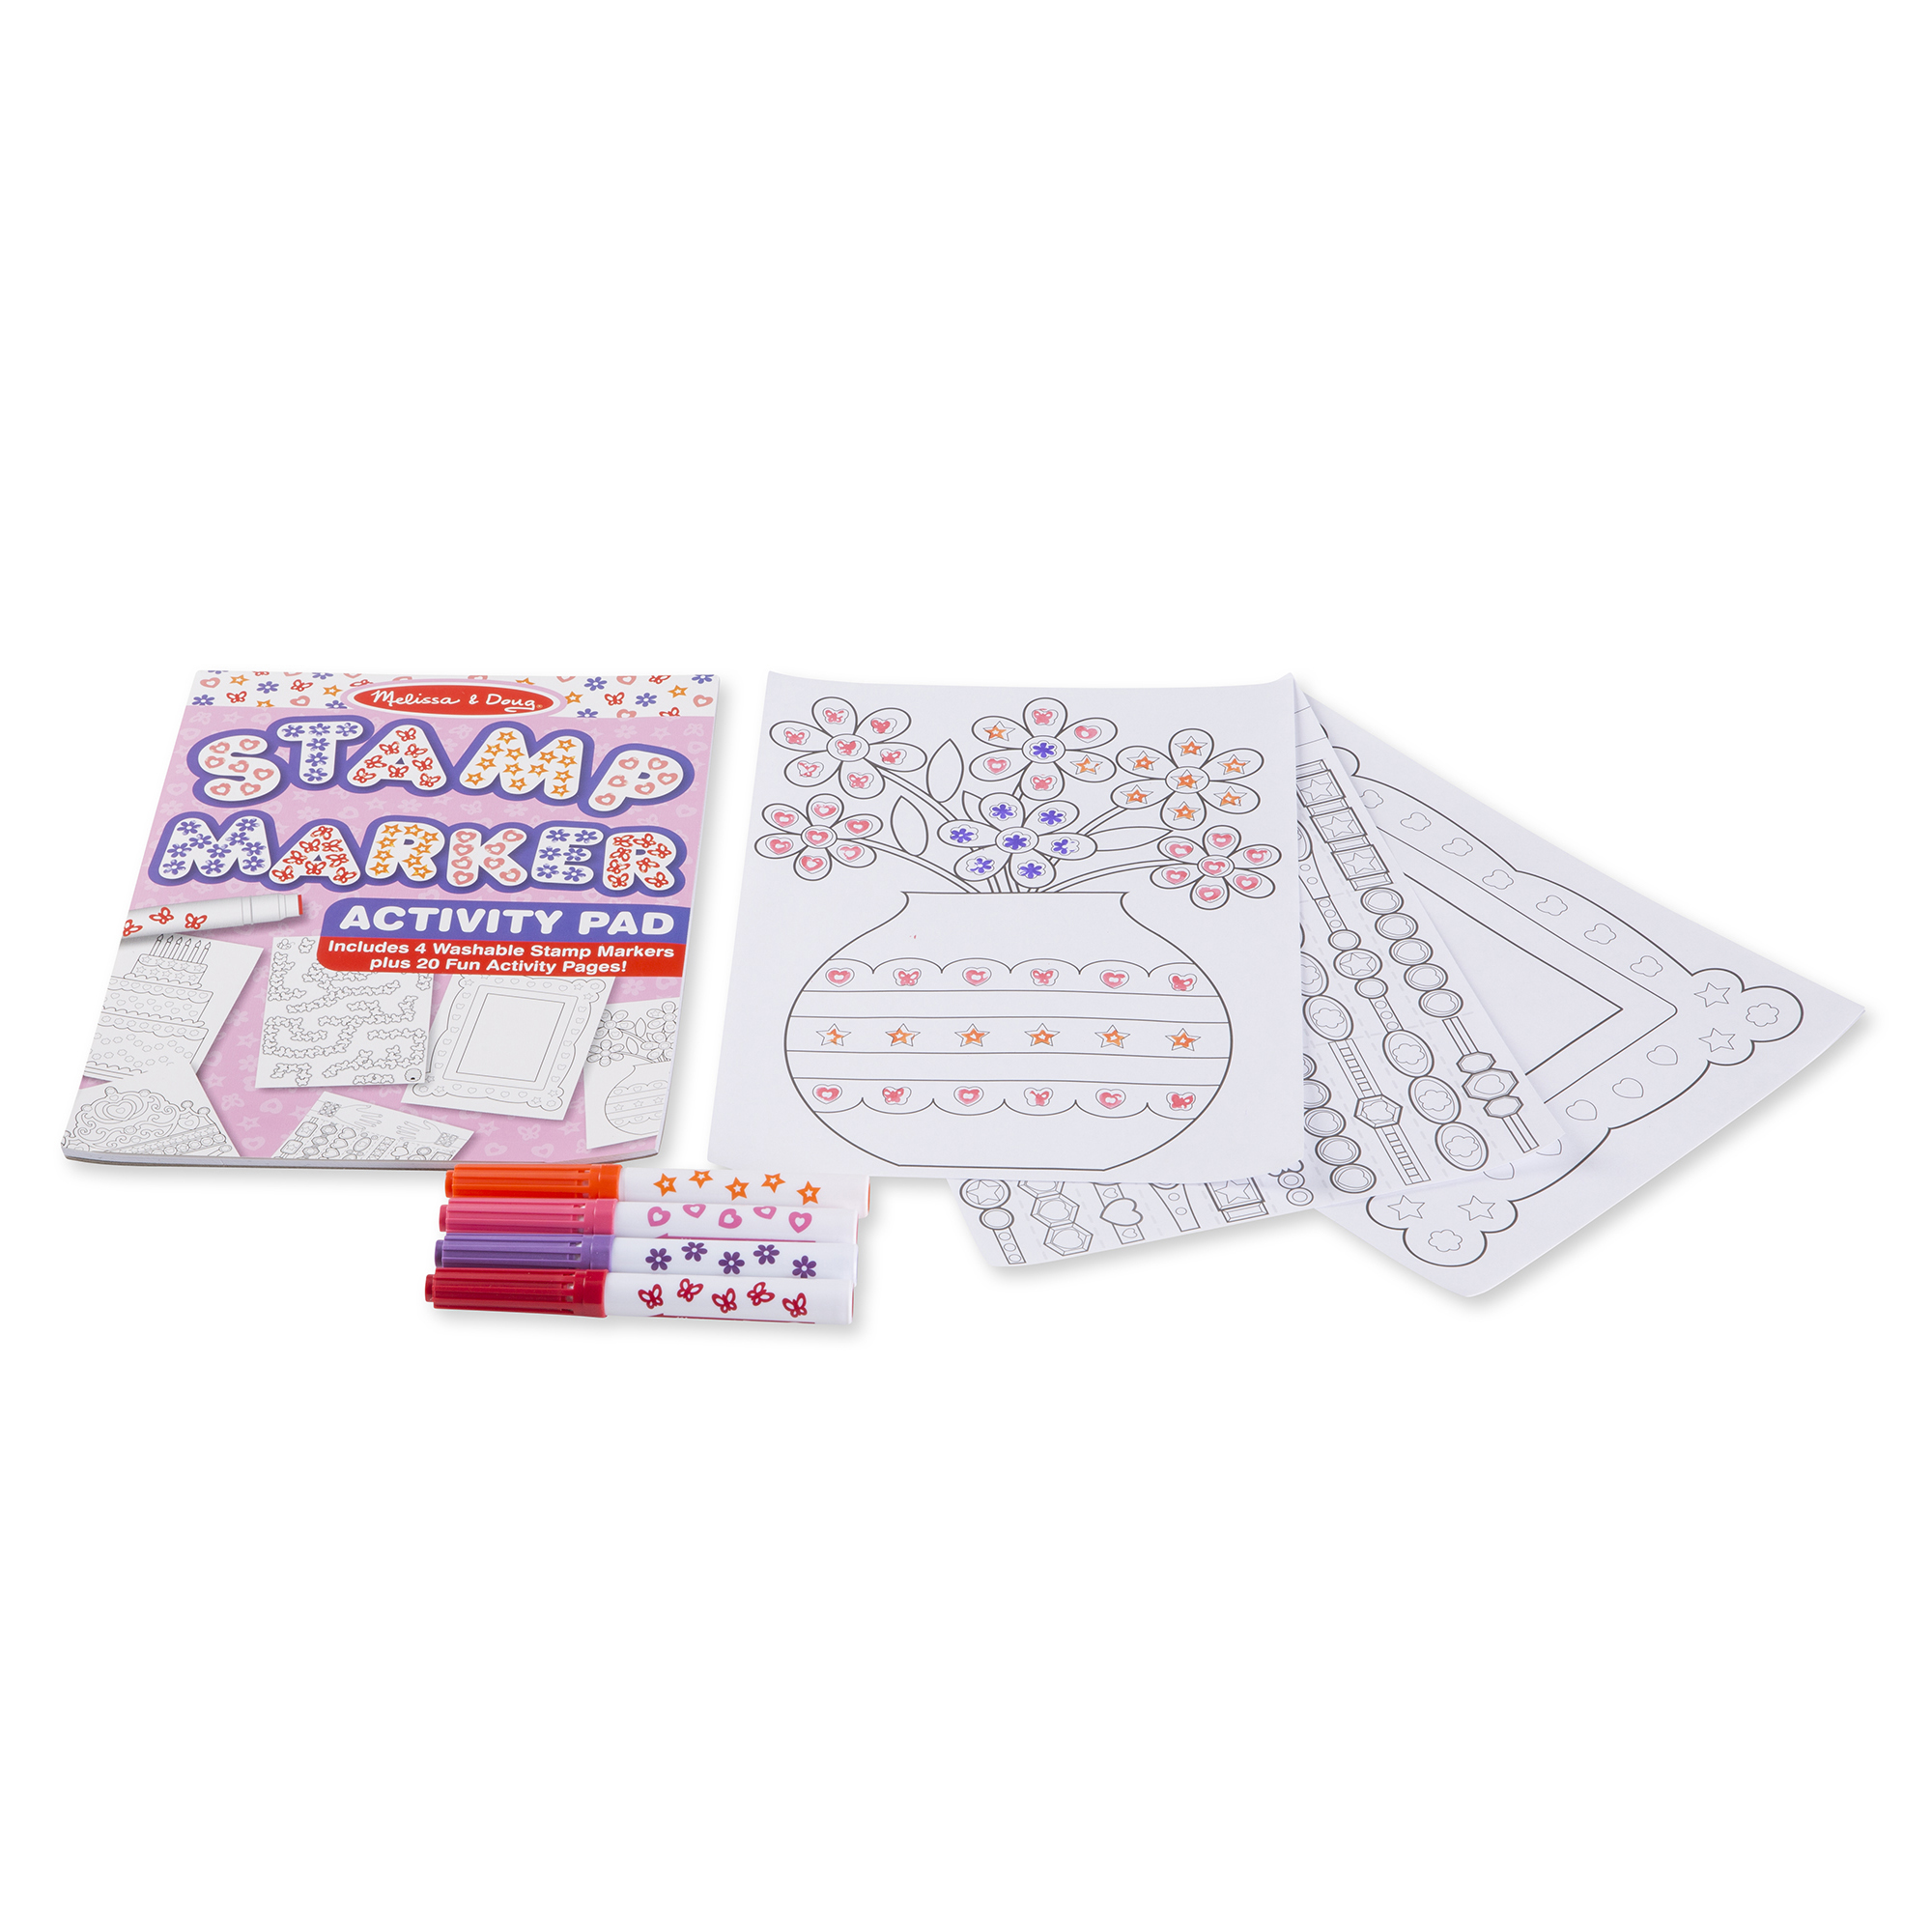 Stamp Markers and Activity Pad  Butterflies Hearts Flowers and Stars